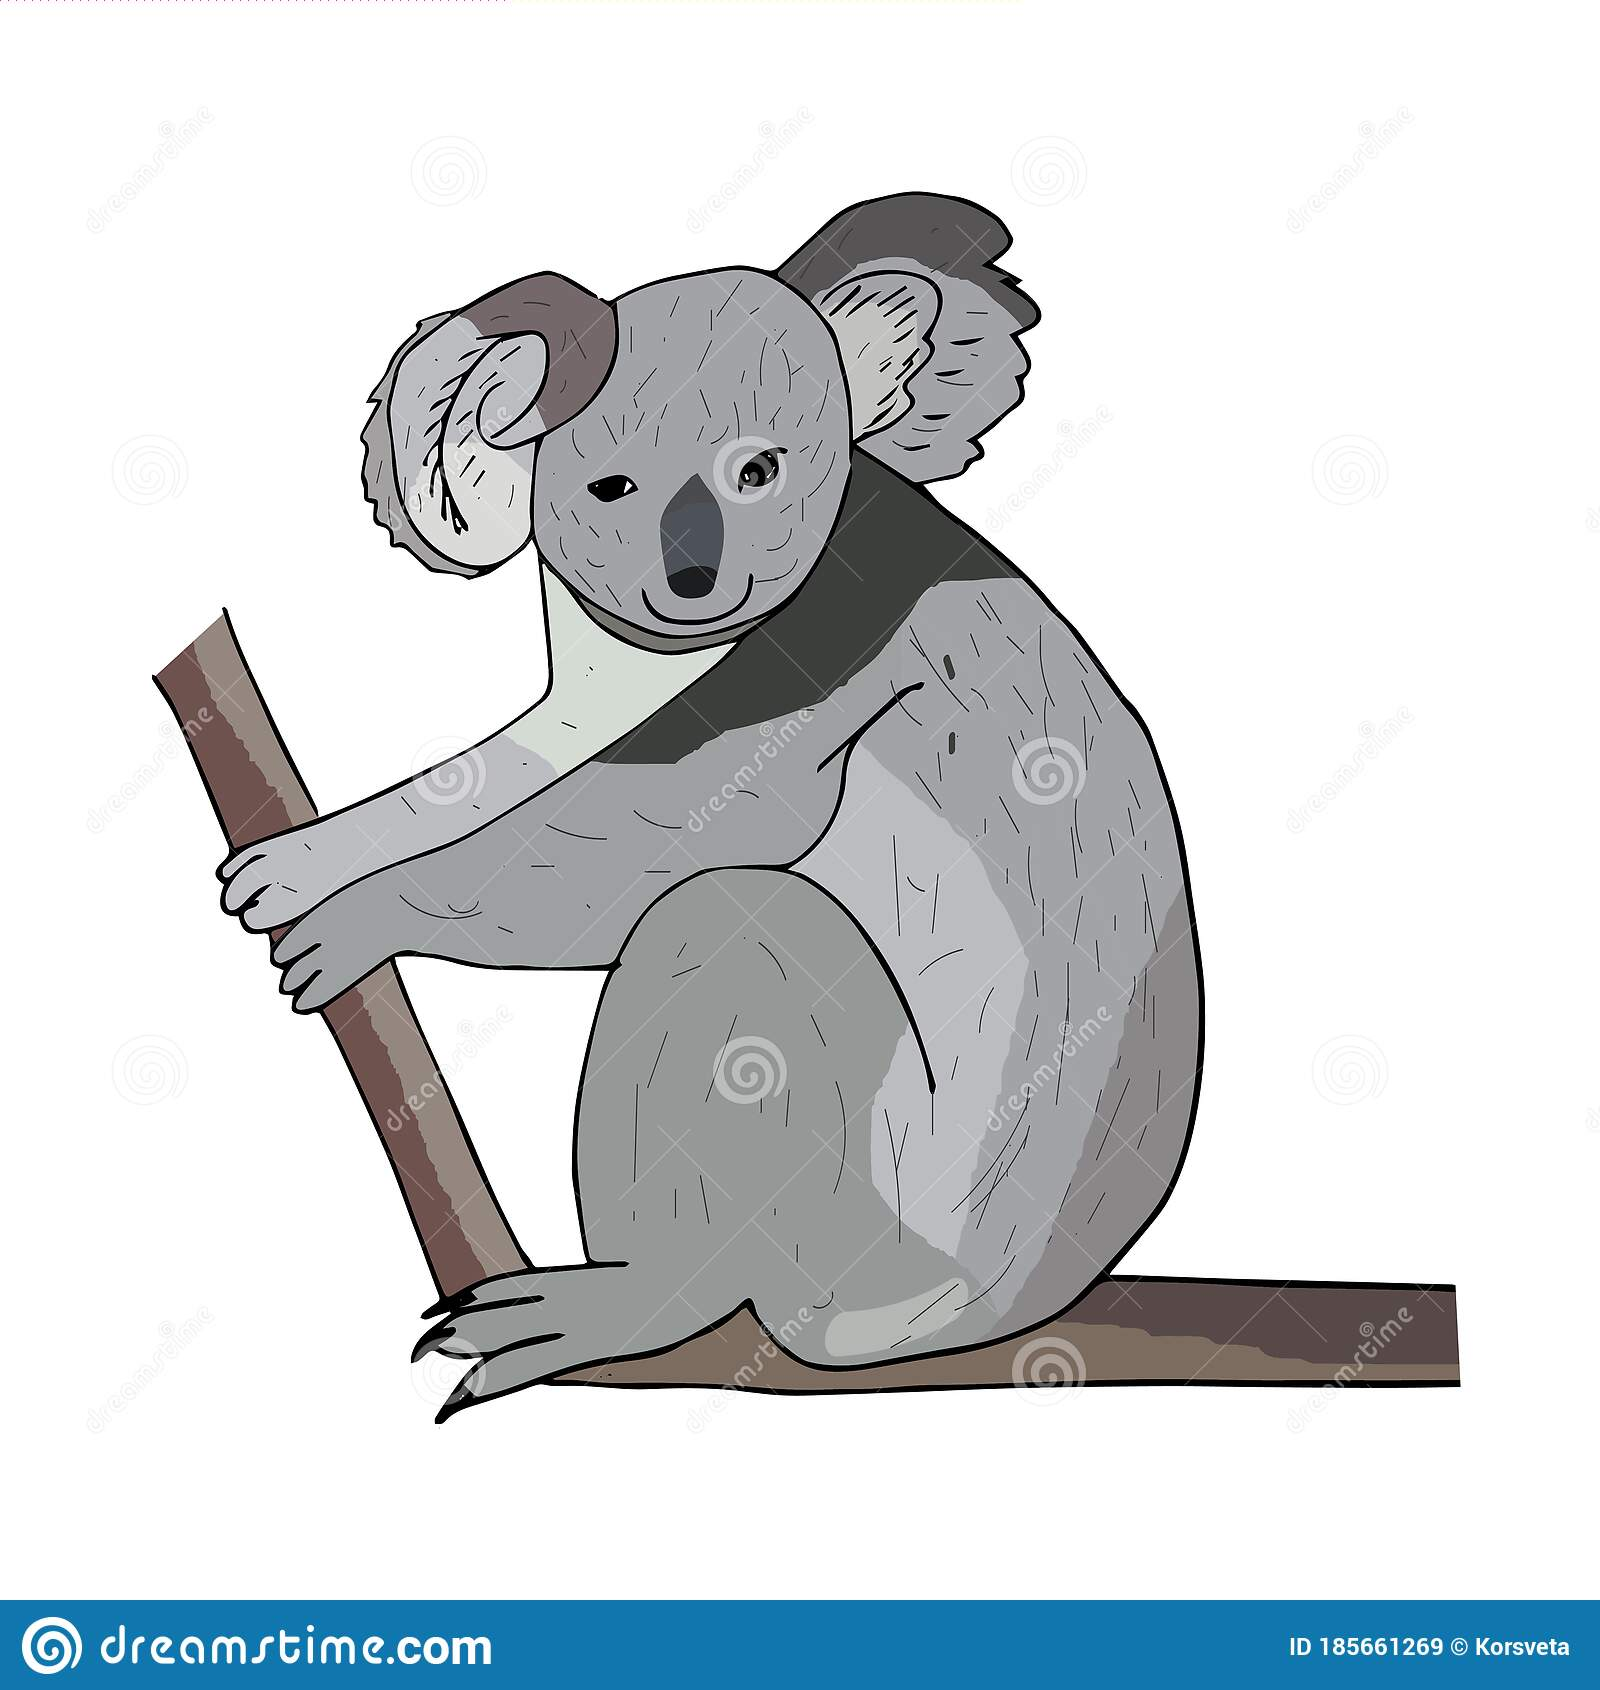 Hug Tree Cartoon Stock Illustrations 622 Hug Tree Cartoon Stock Illustrations Vectors Clipart Dreamstime Download this free vector about koala on tree branch flat cartoon, and discover more than 10 million professional graphic resources on freepik. dreamstime com